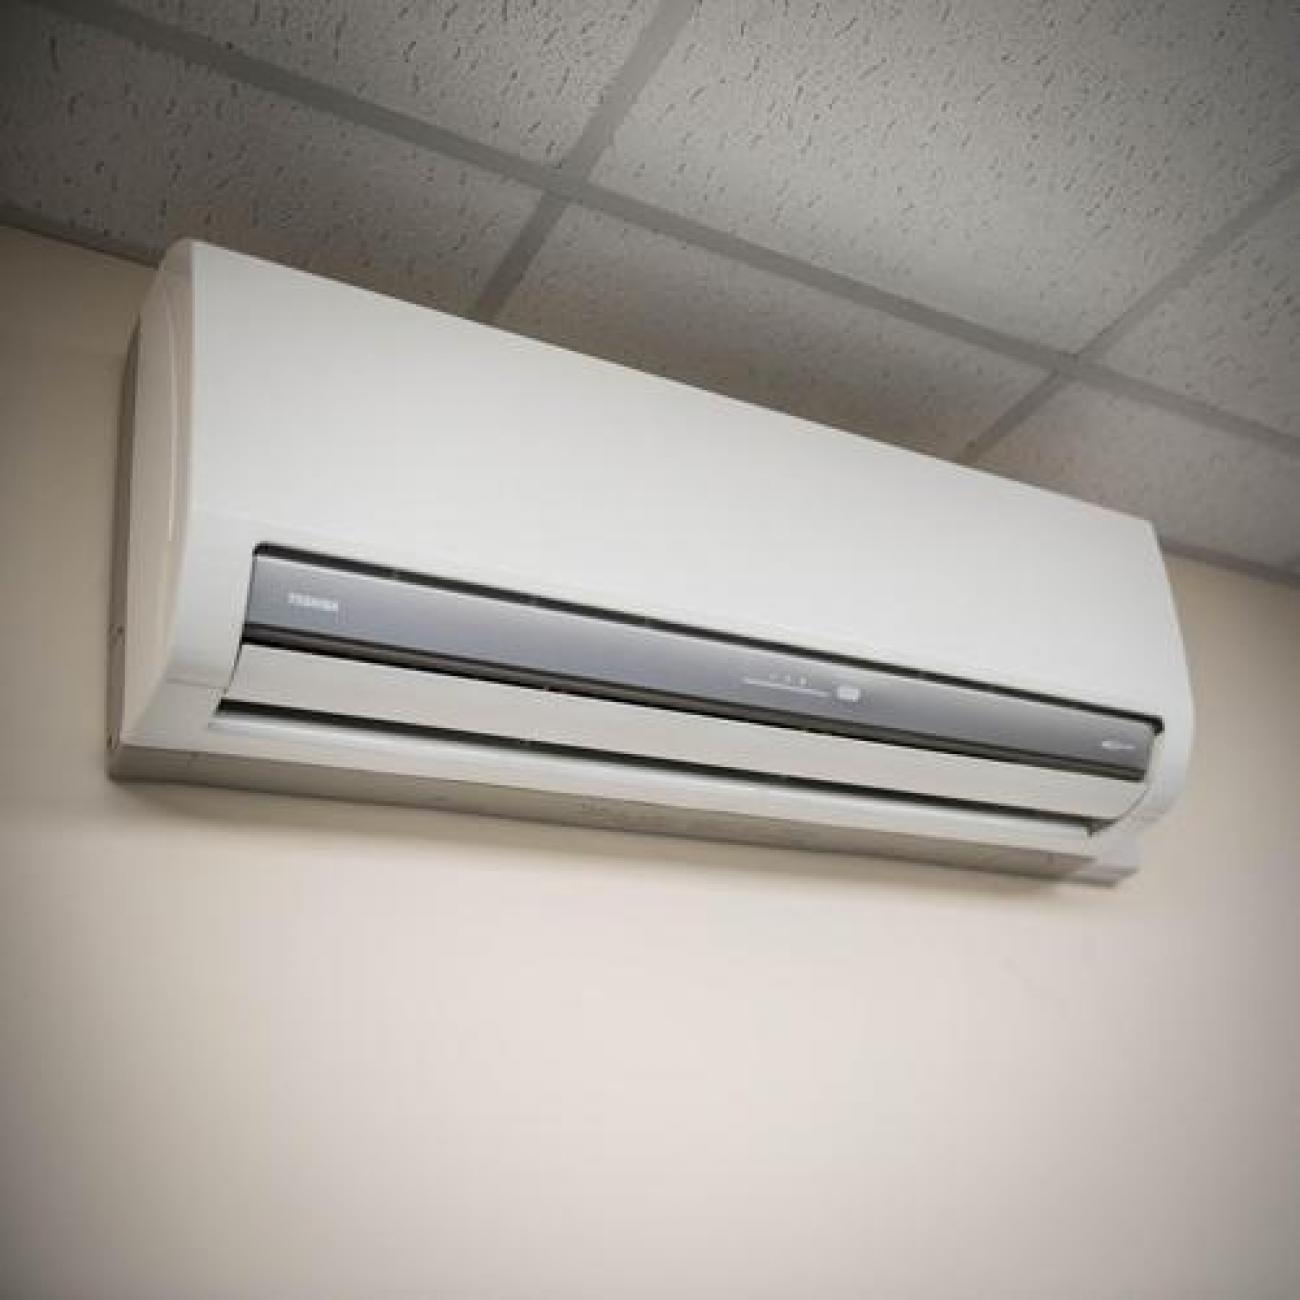 Daikin Scrawl Wall Mounted